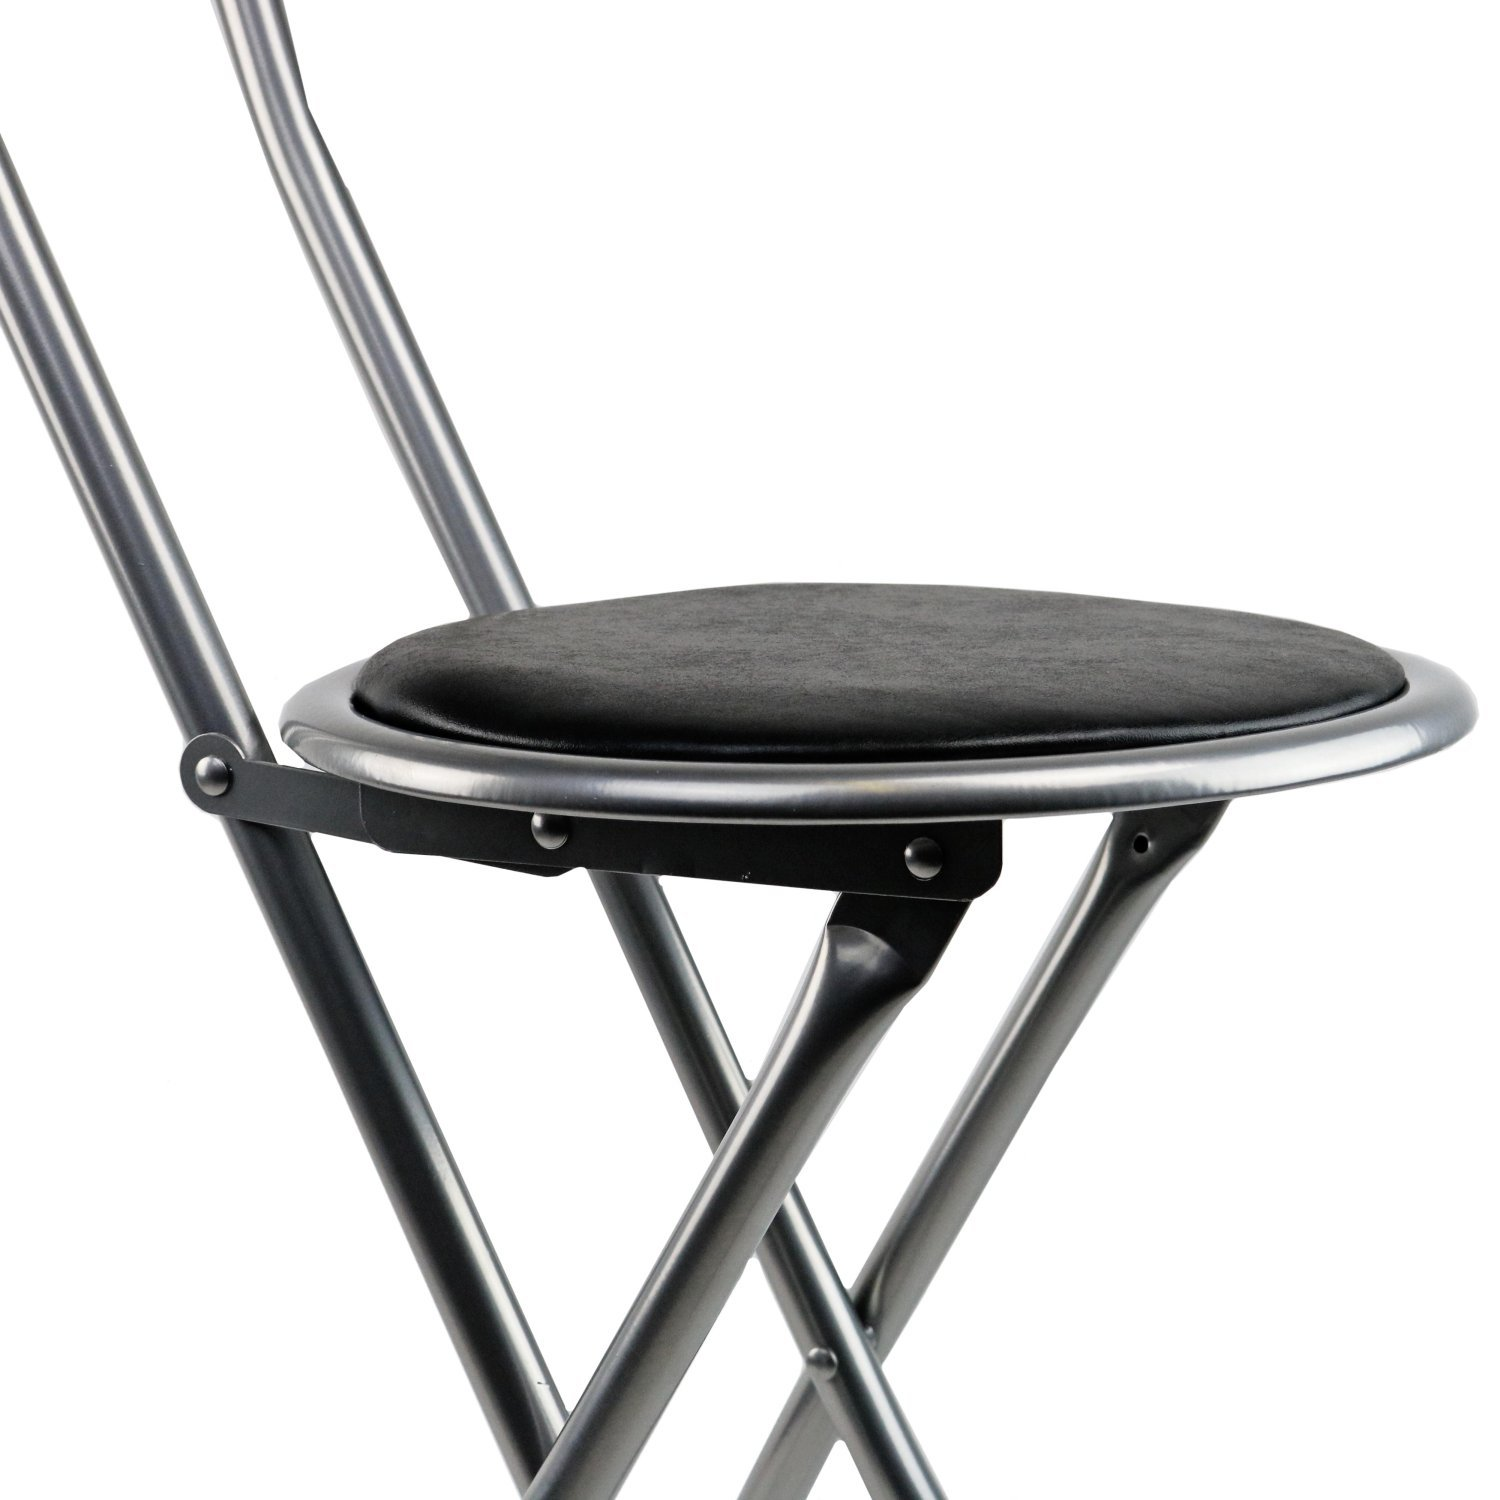 Black Padded Folding High Chair Breakfast Kitchen Bar  : 3626 black padded folding high chair breakfast kitchen bar stool seat 03 from oypla.com size 1500 x 1500 jpeg 128kB